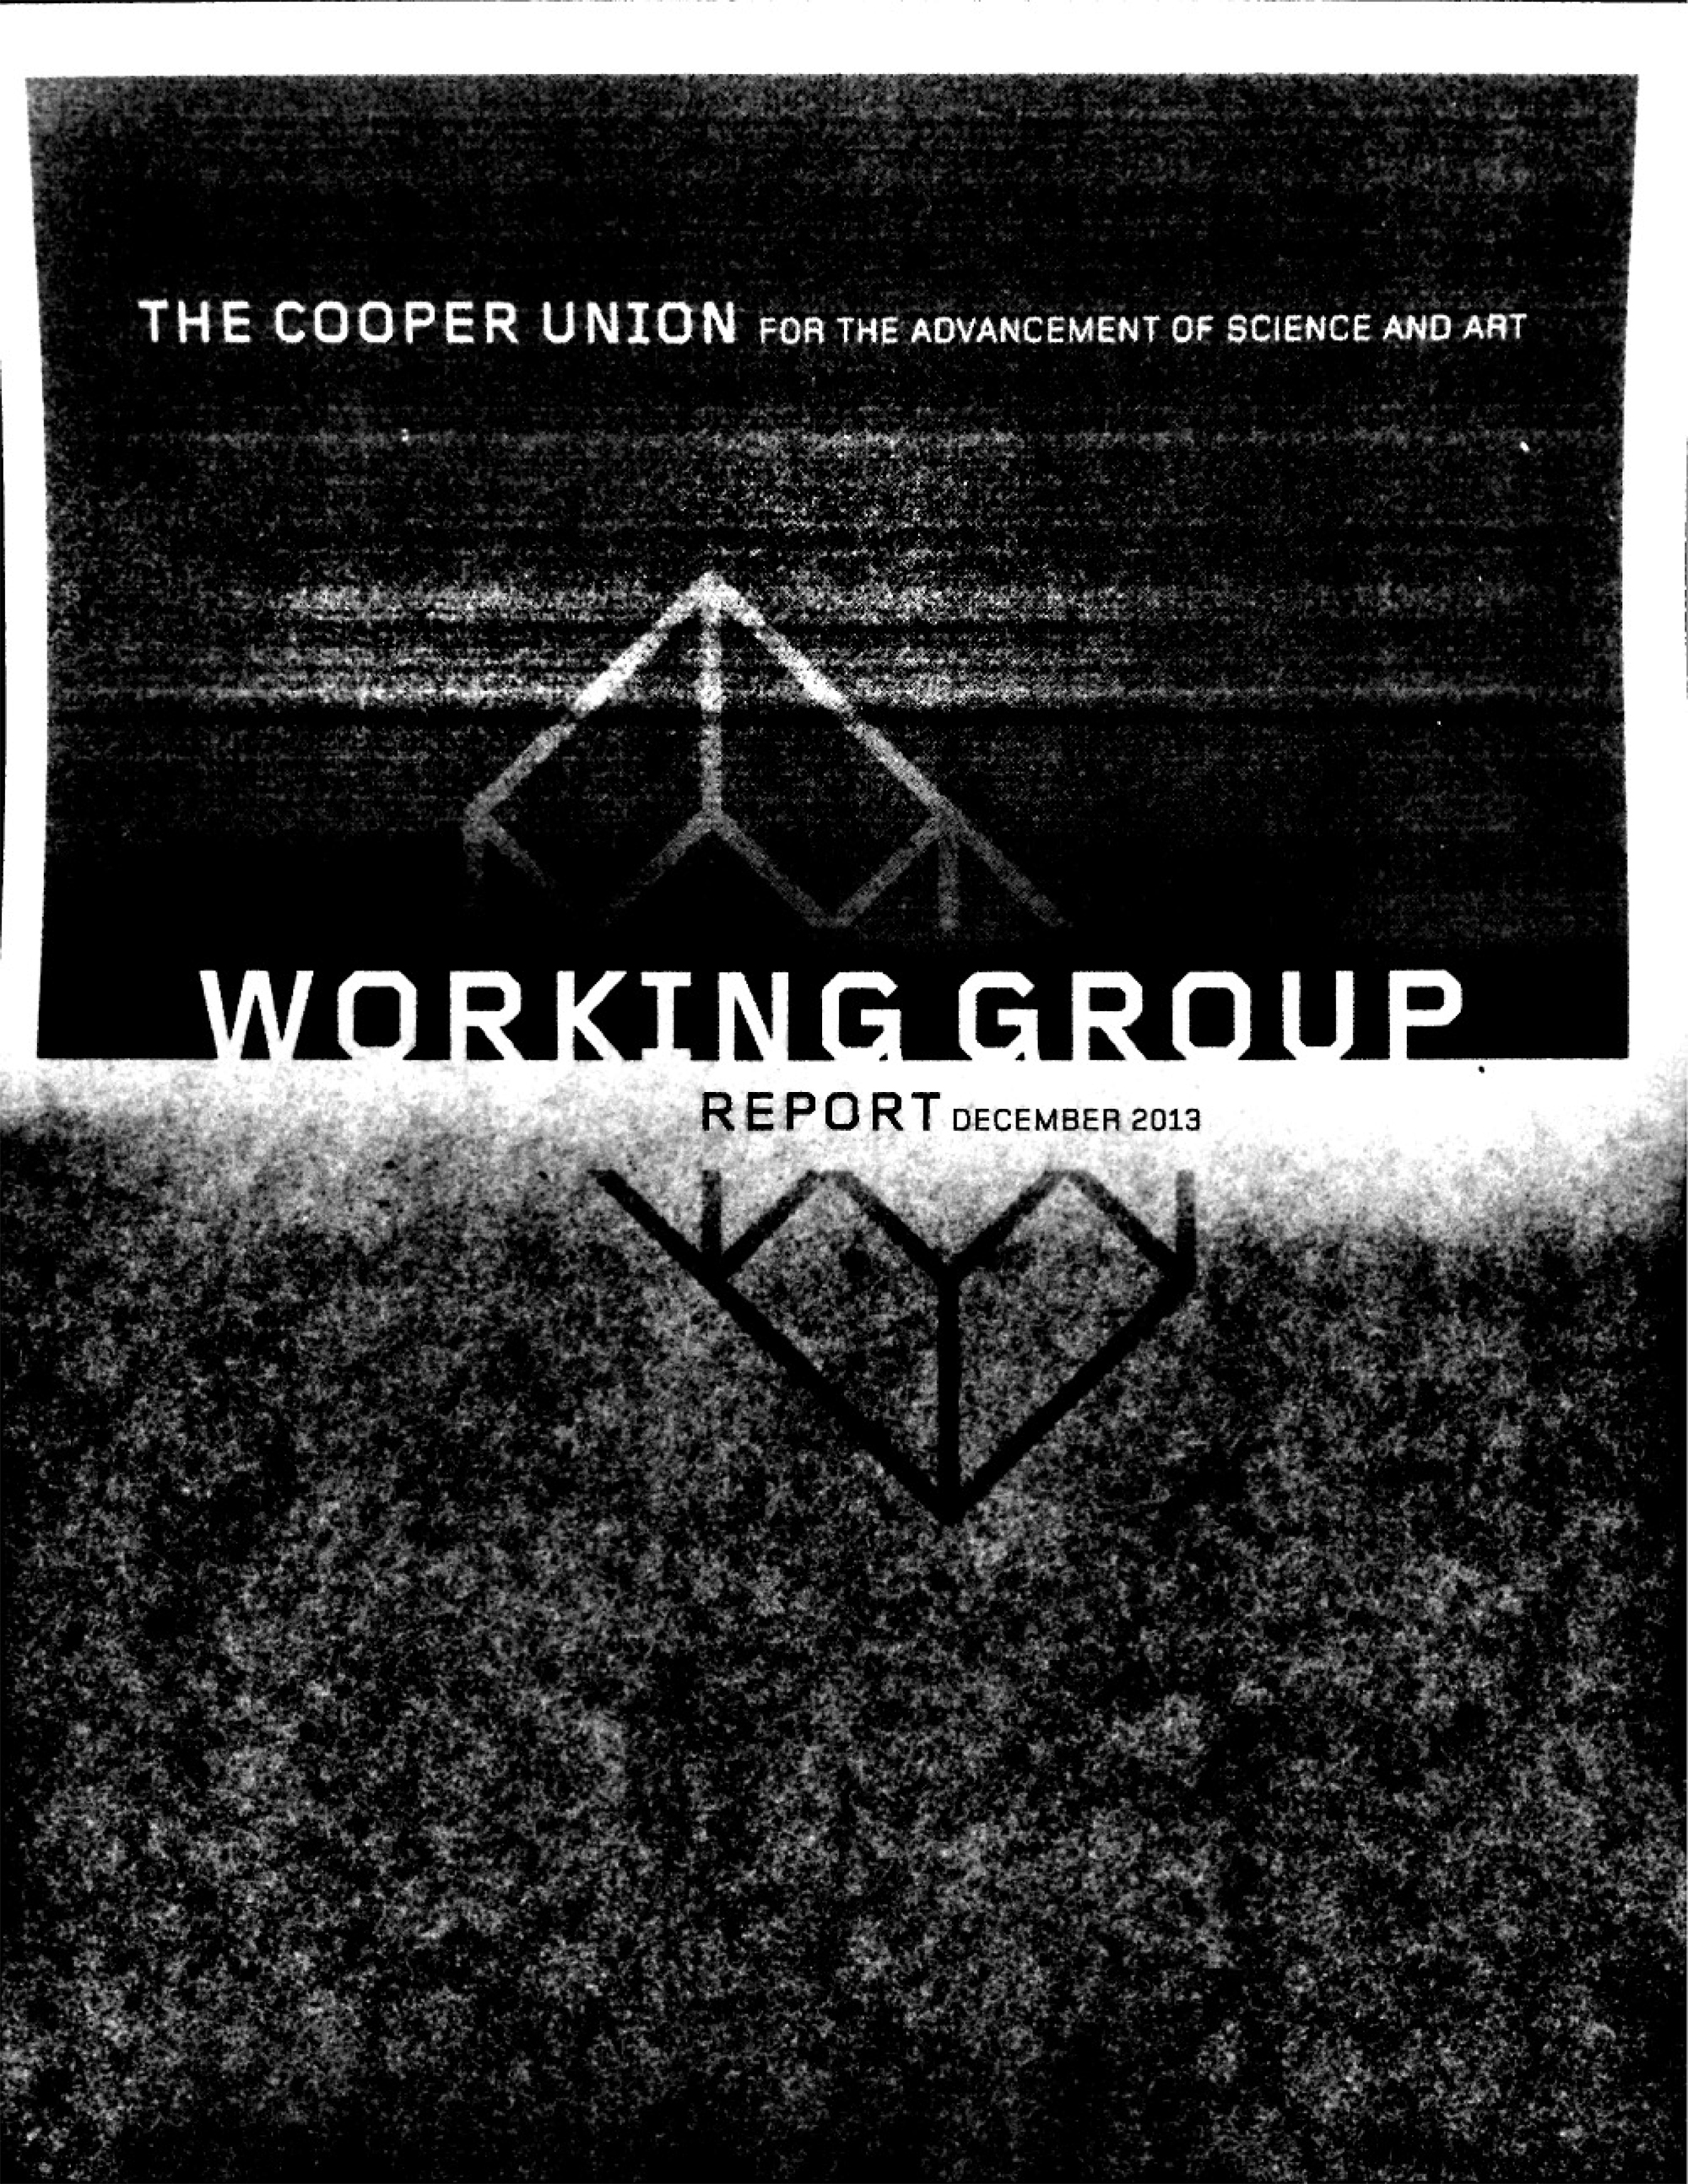 Working Group Report